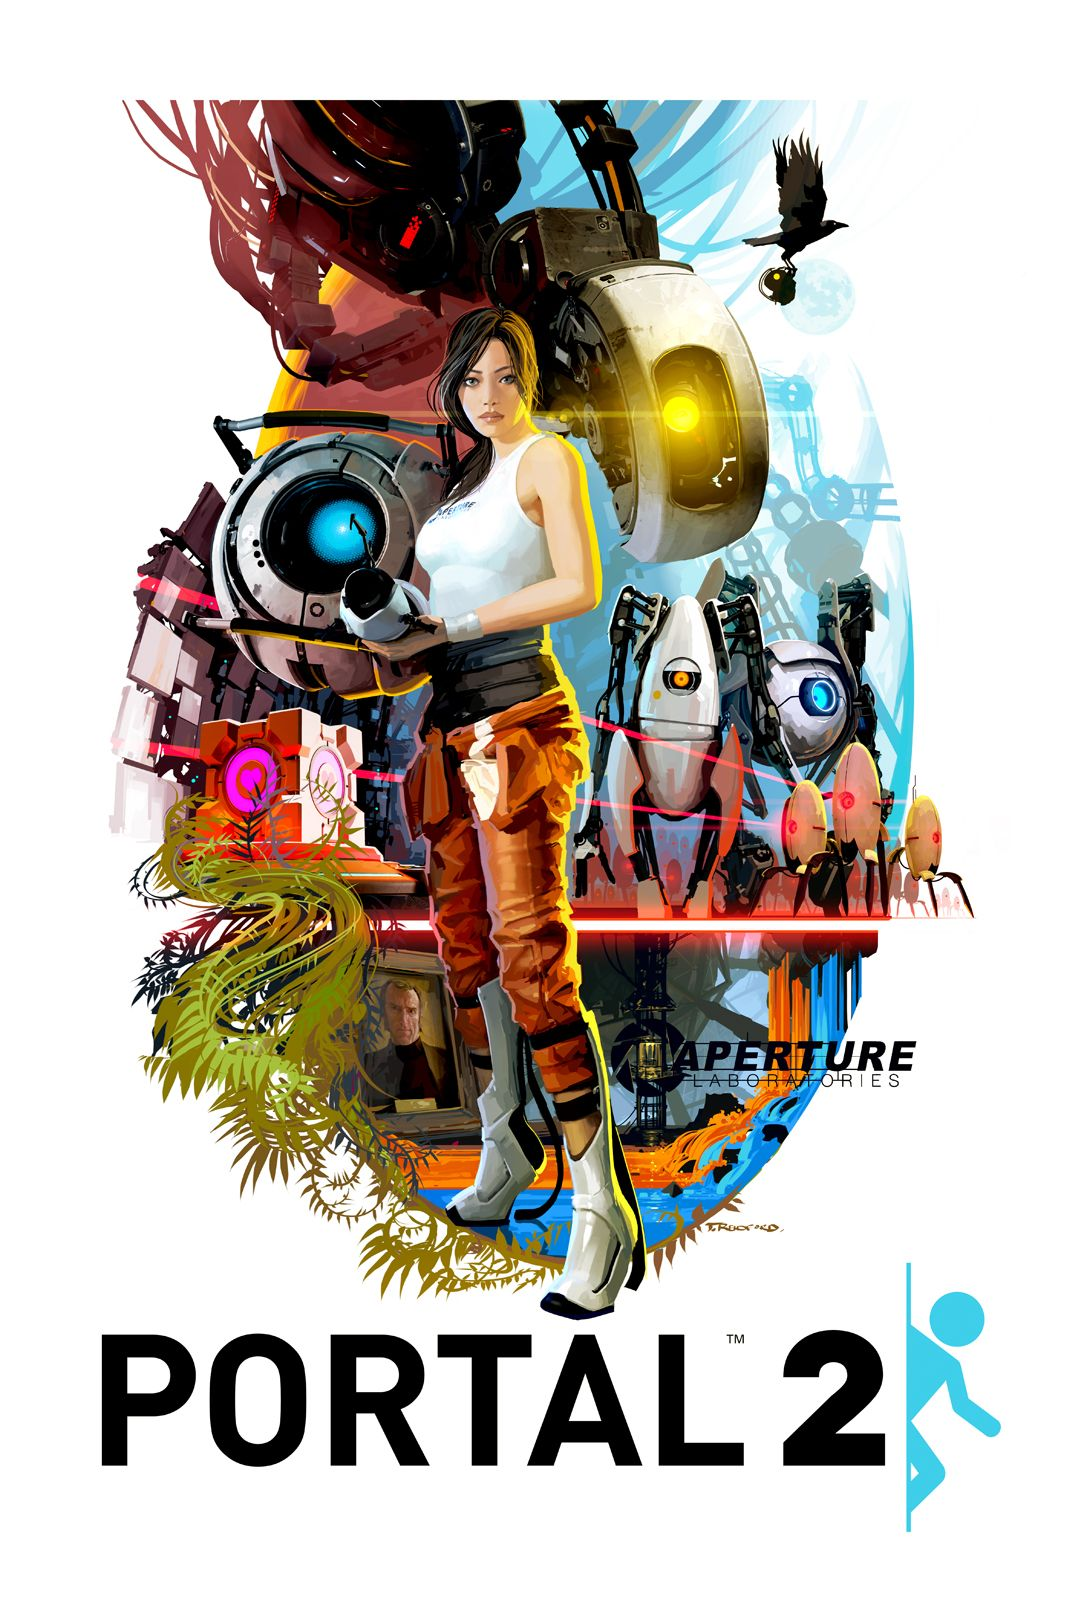 Poster design game - Community Post 70s Style Portal 2 Poster